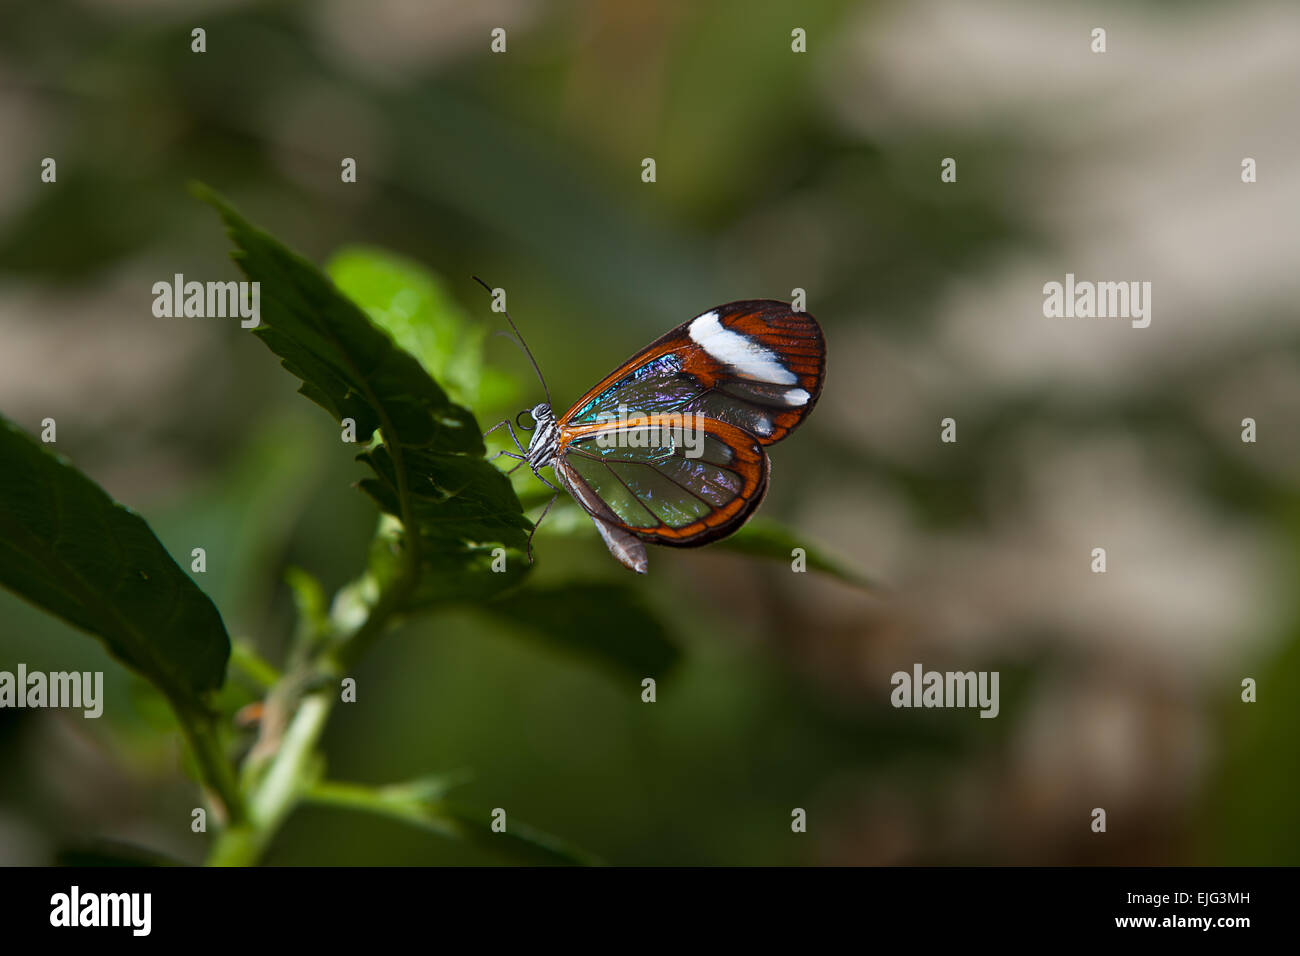 Glasswing, Greta oto, brush-footed butterfly on green vegetation - Stock Image